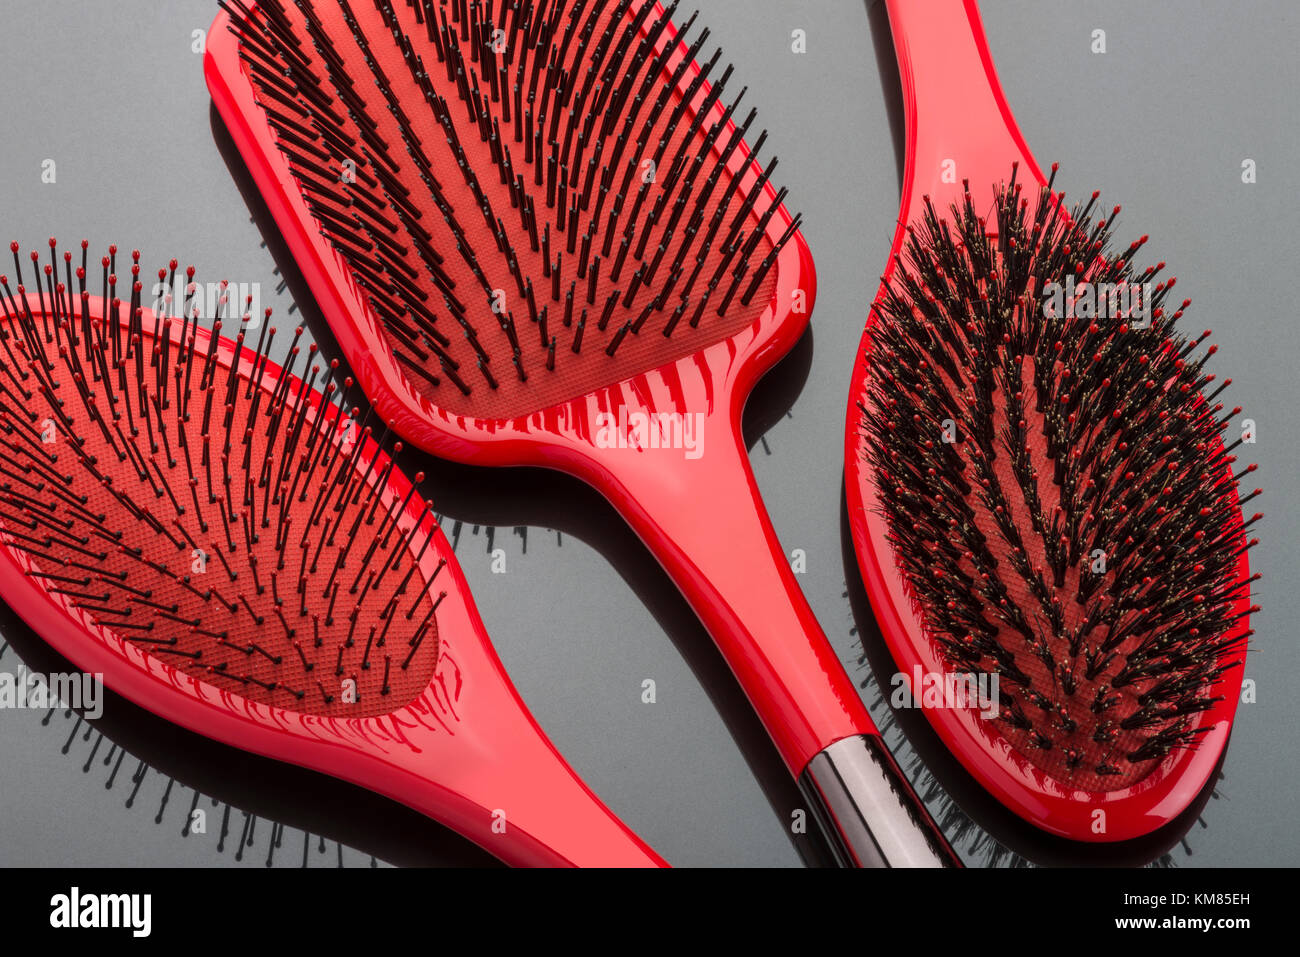 Three Red Hair Brushes - Stock Image